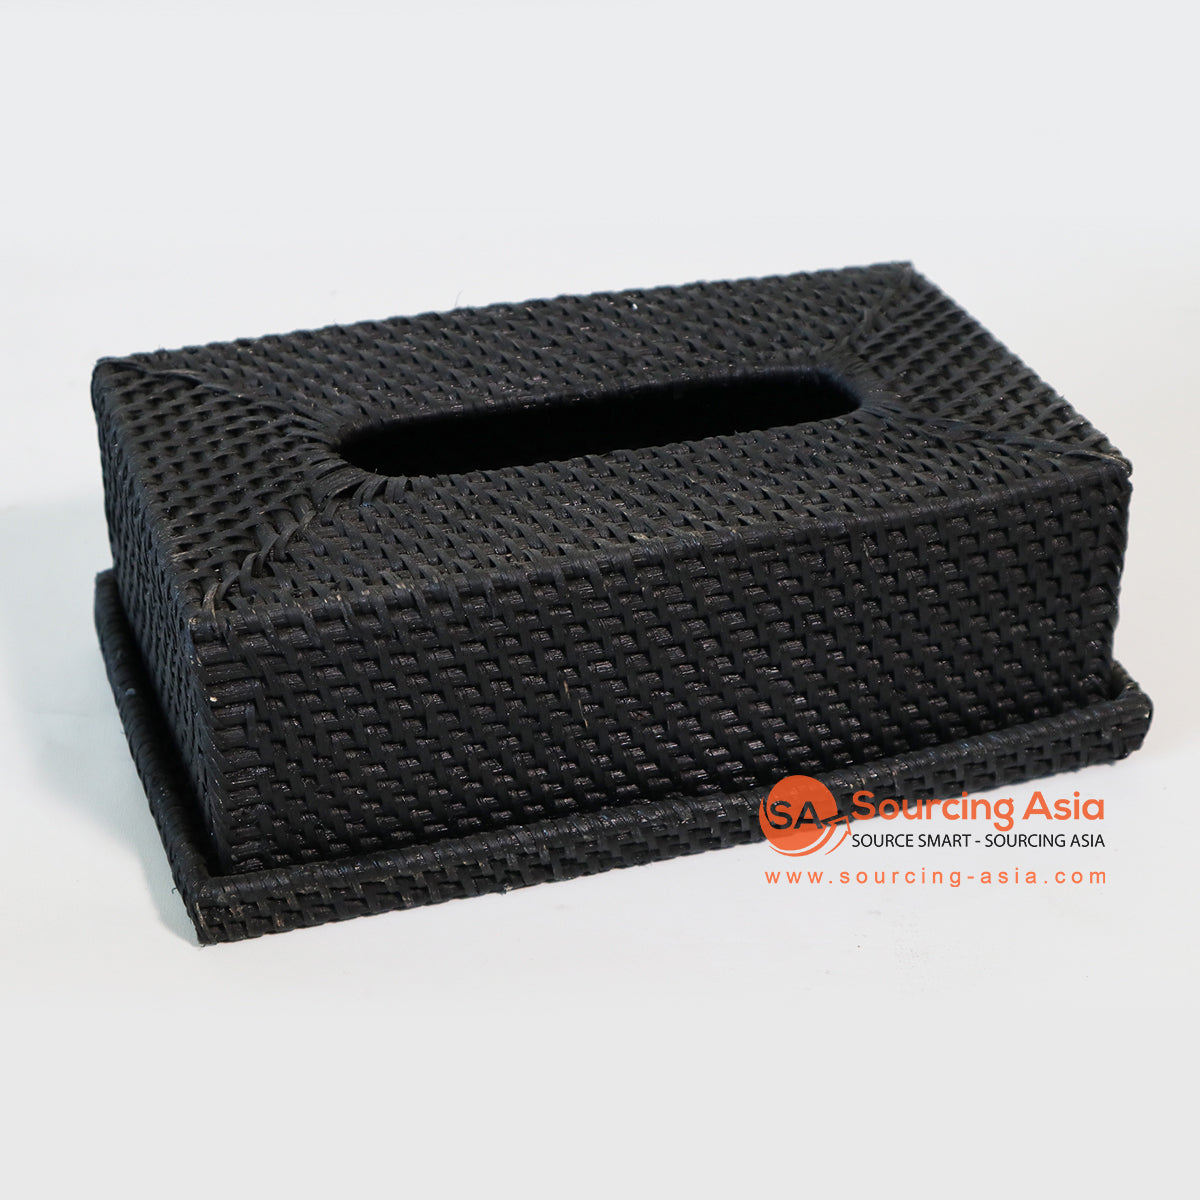 MTIC070-1 RATTAN TISSUE BOX COLOR BLACK